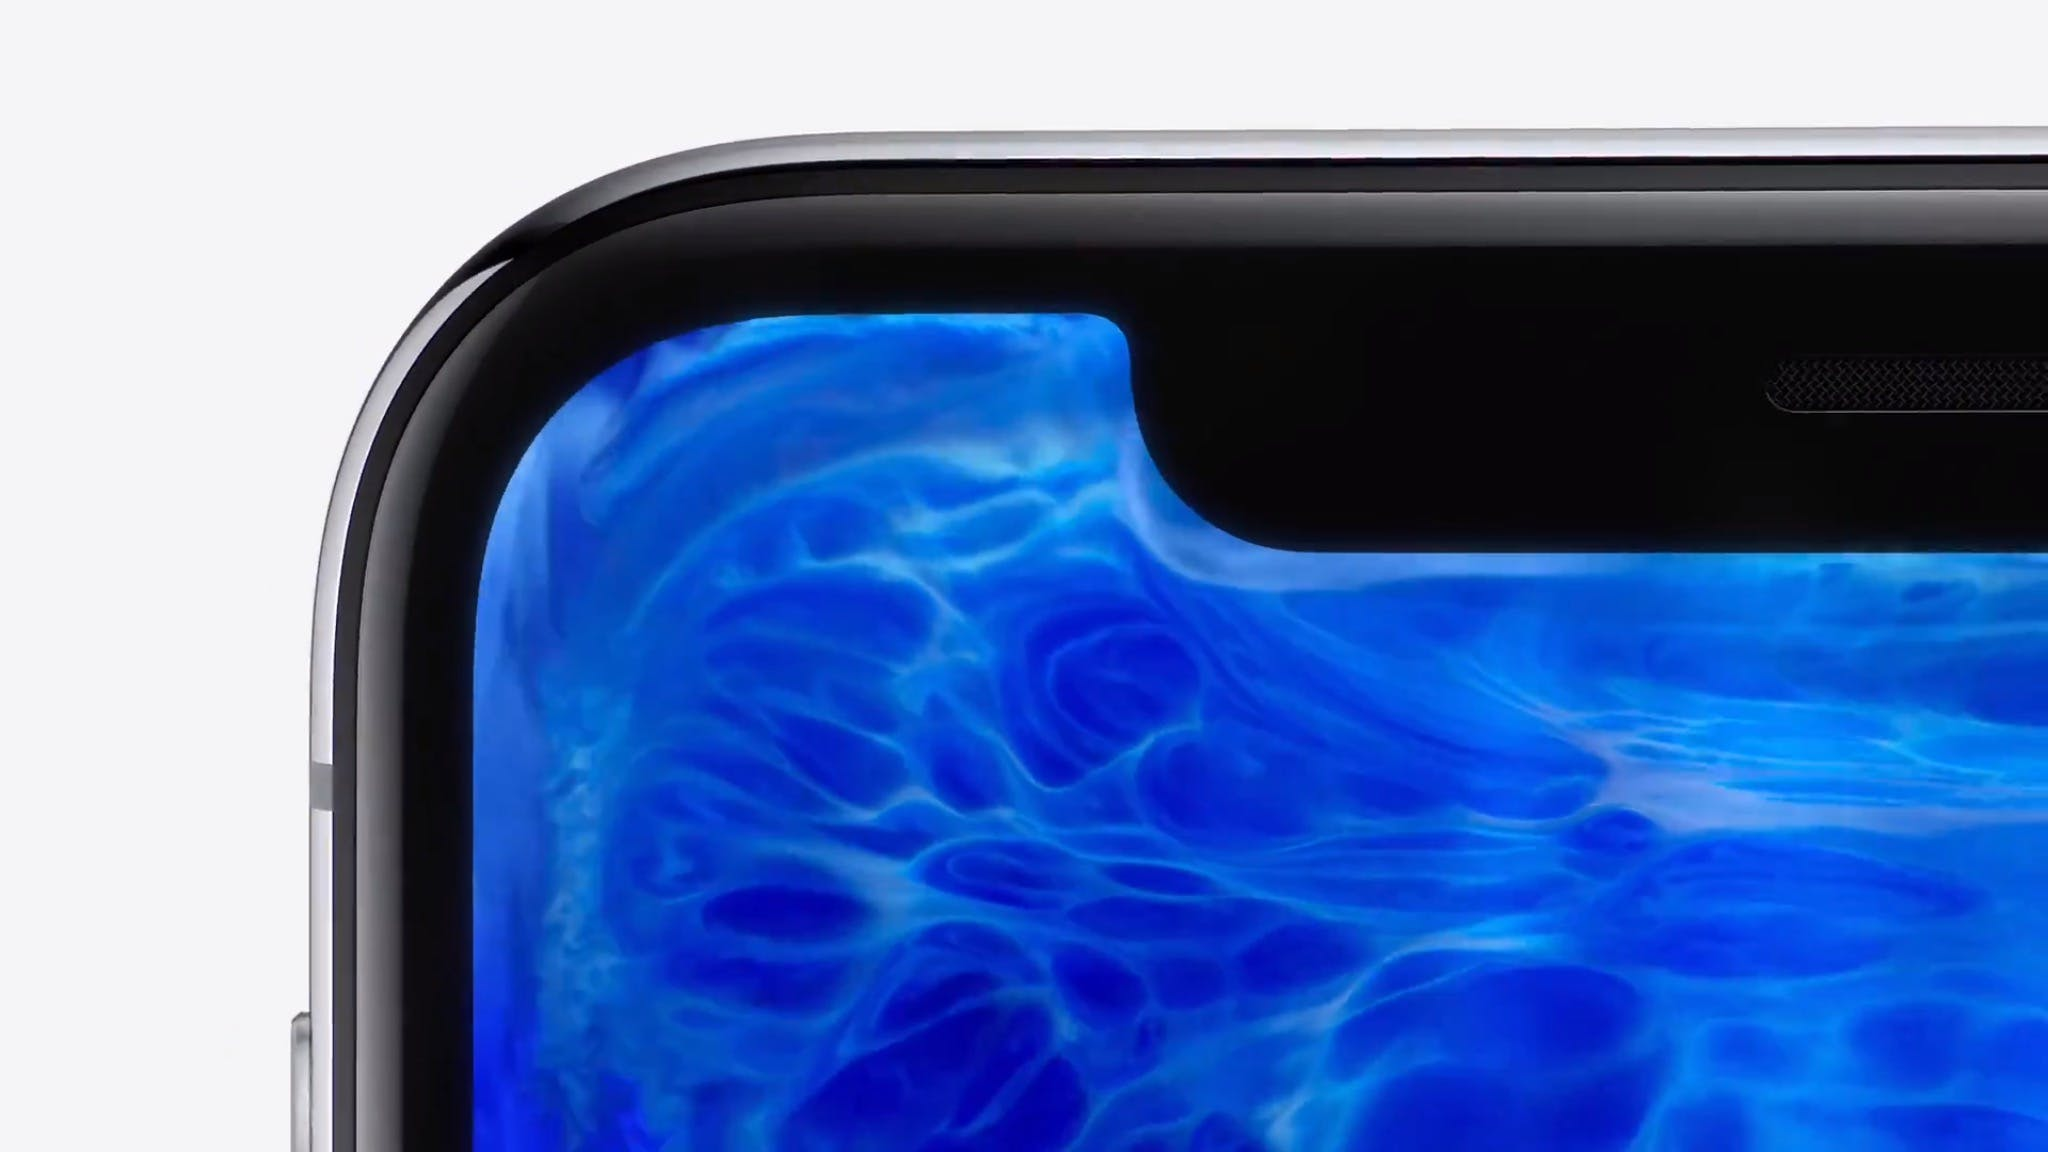 Foto d'estoc gratuïta de Apple, iPhone, iPhone X, mòbil